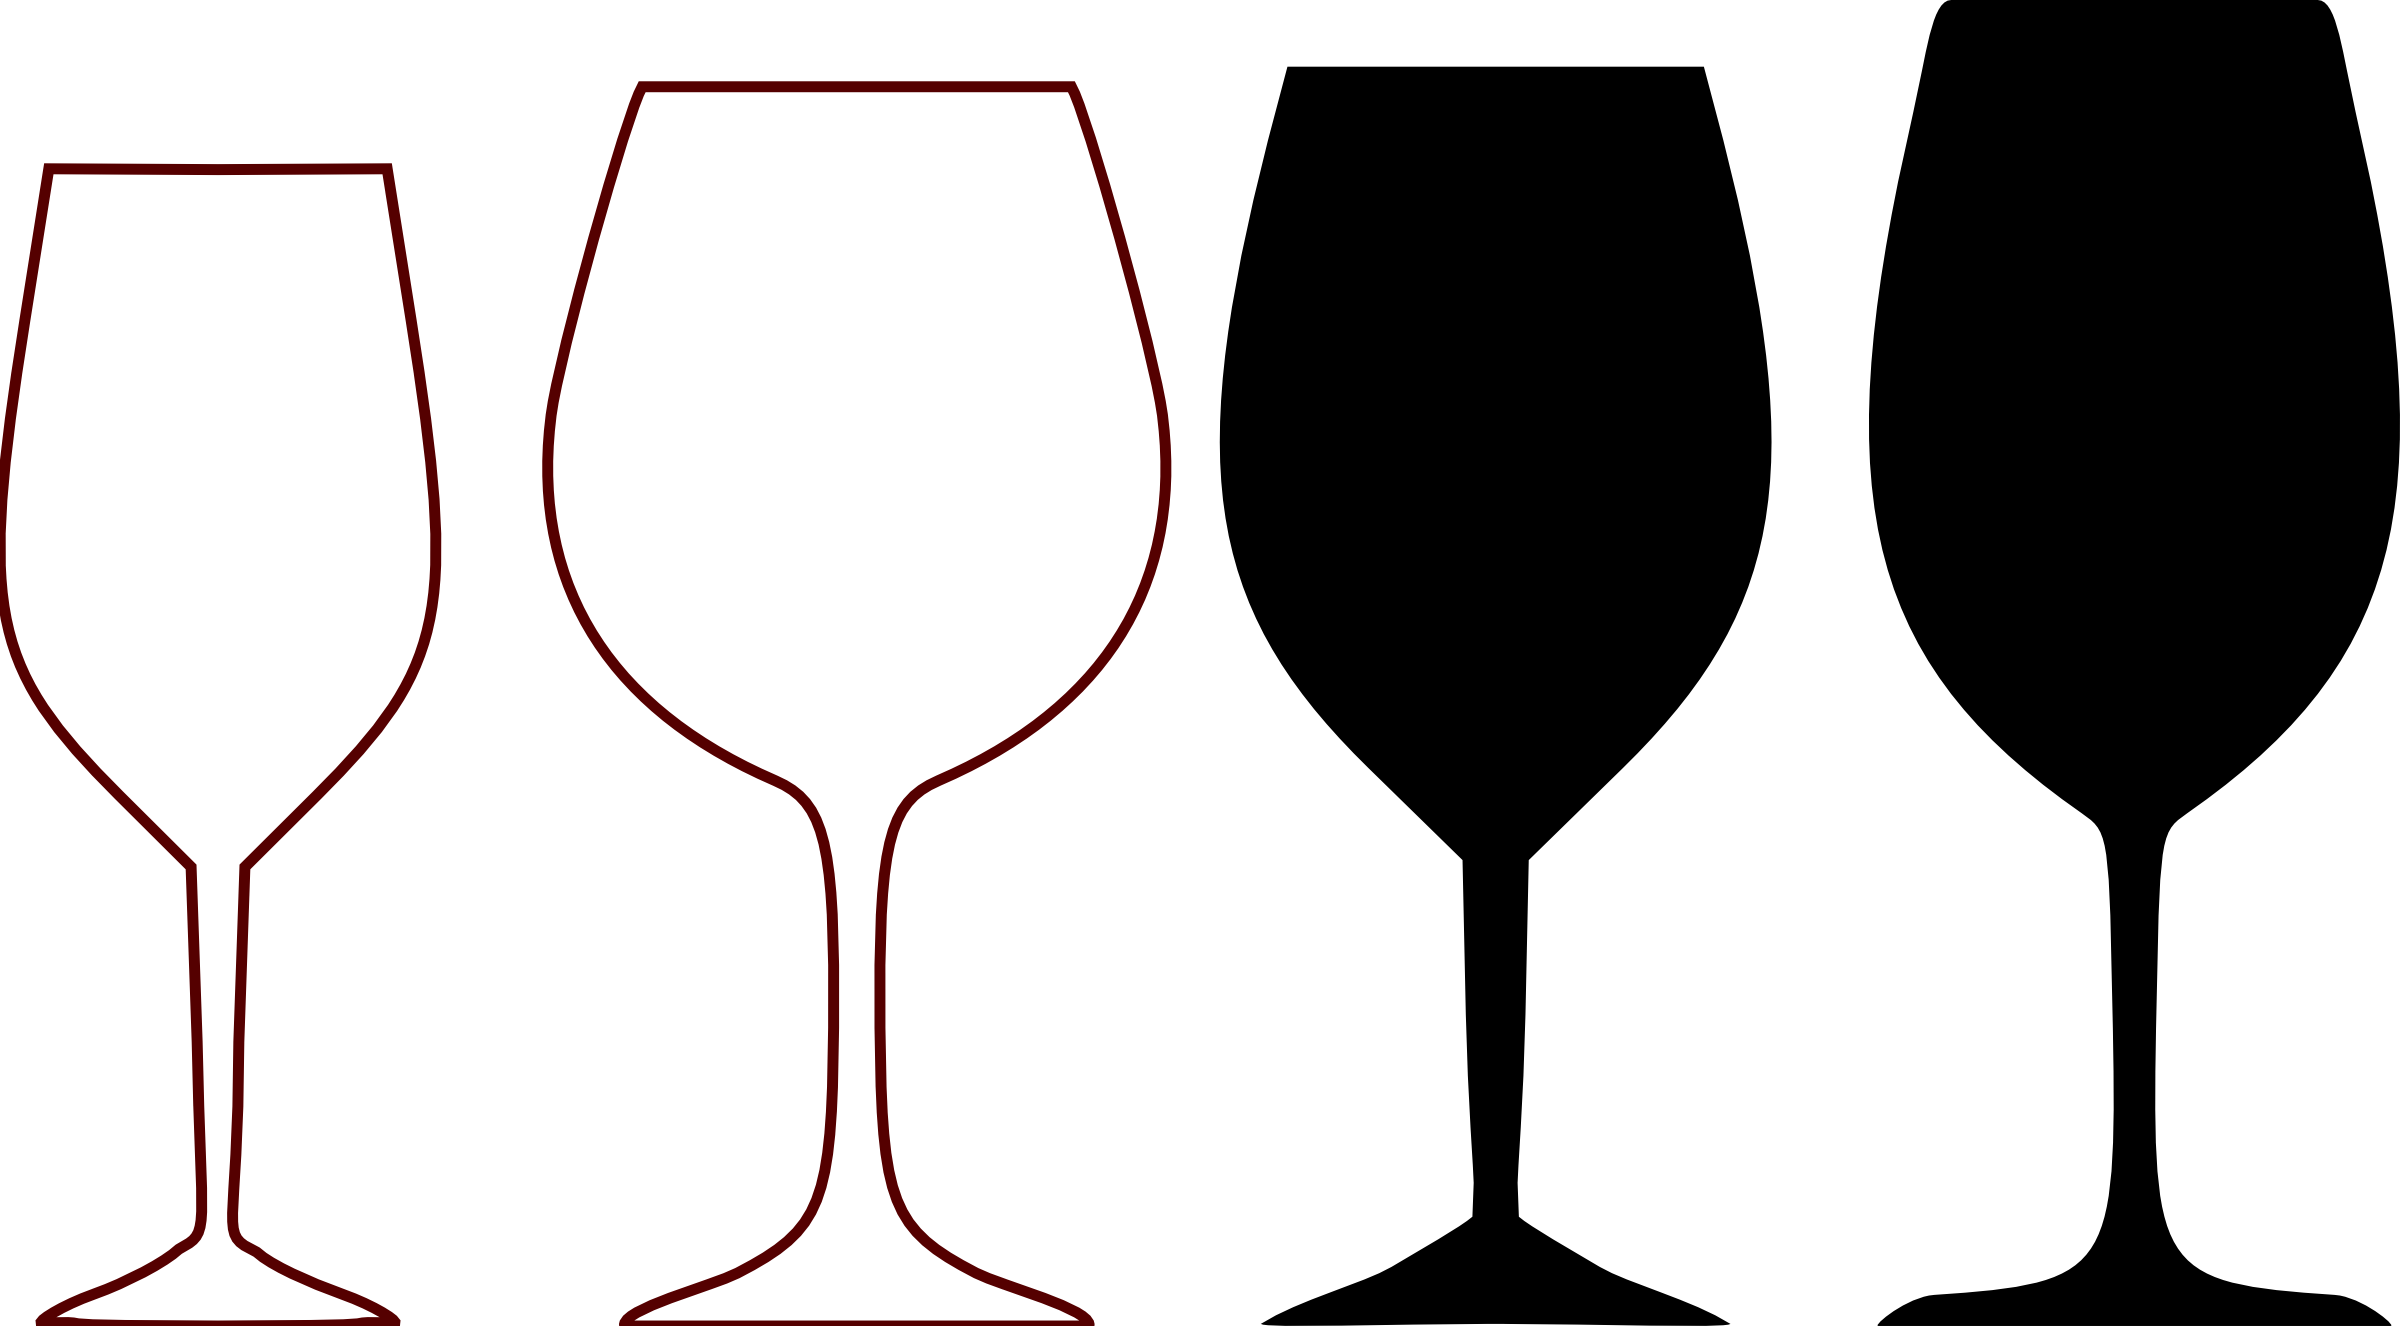 Wine gla simple clipart clipart images gallery for free.